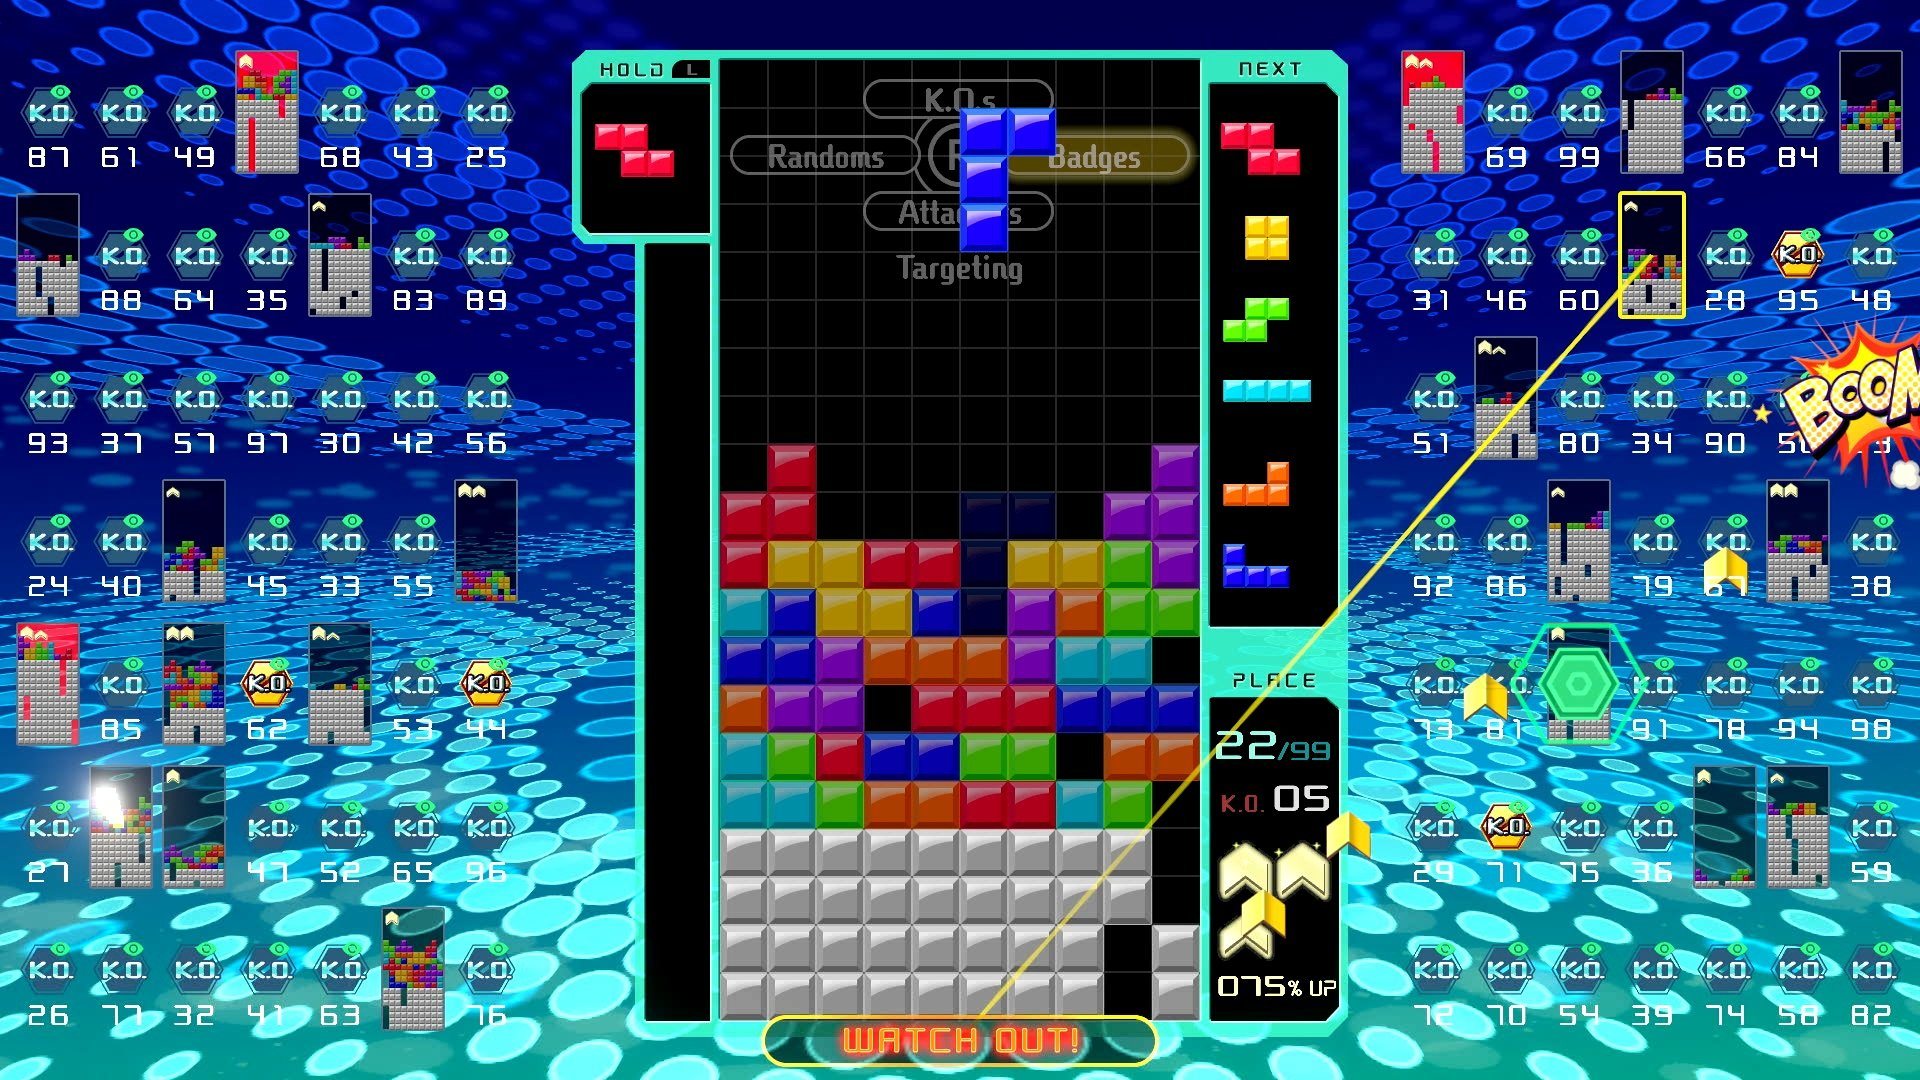 Tetris 99 is not only a great multiplayer game, it's also a unique entry to the Battle Royale genre.